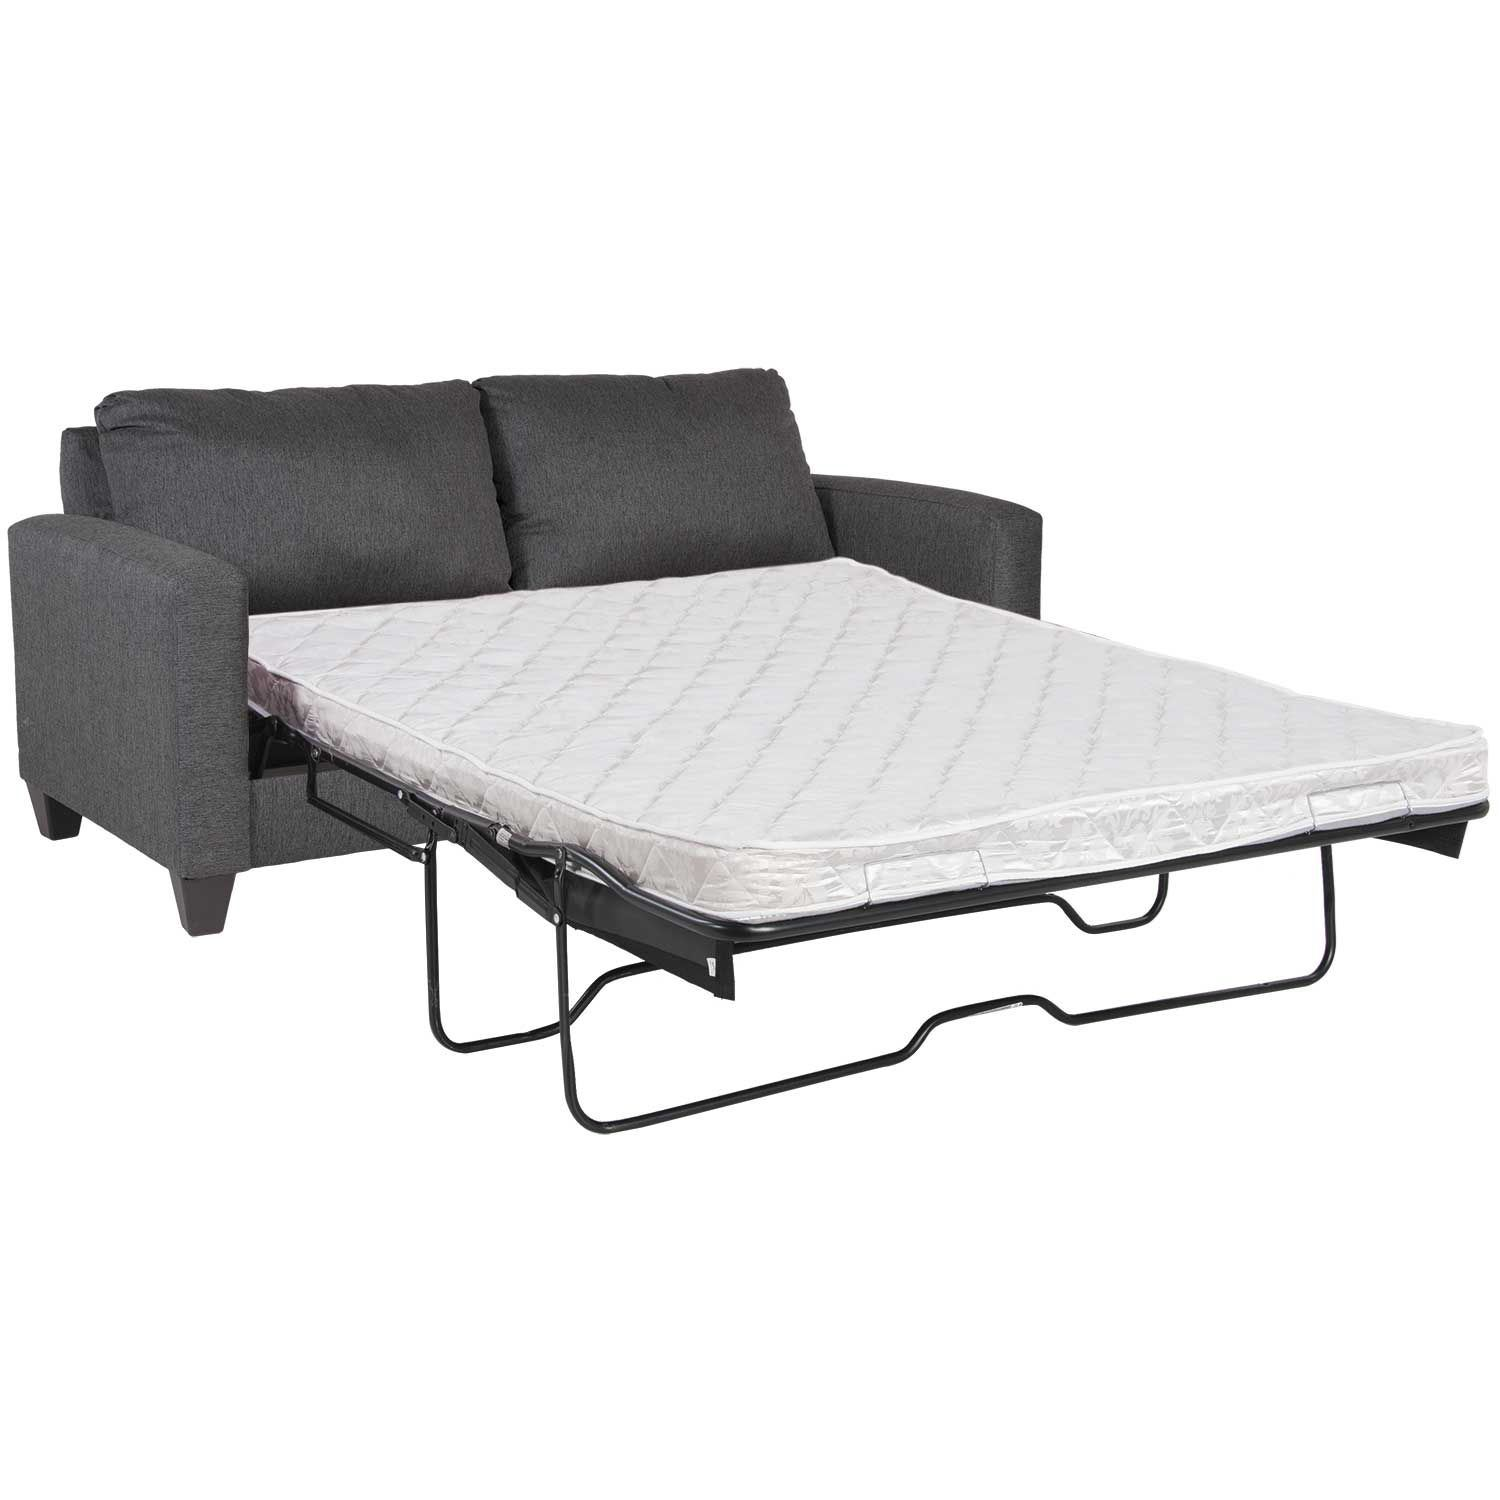 Picture of piper carbon queen sleeper sofa